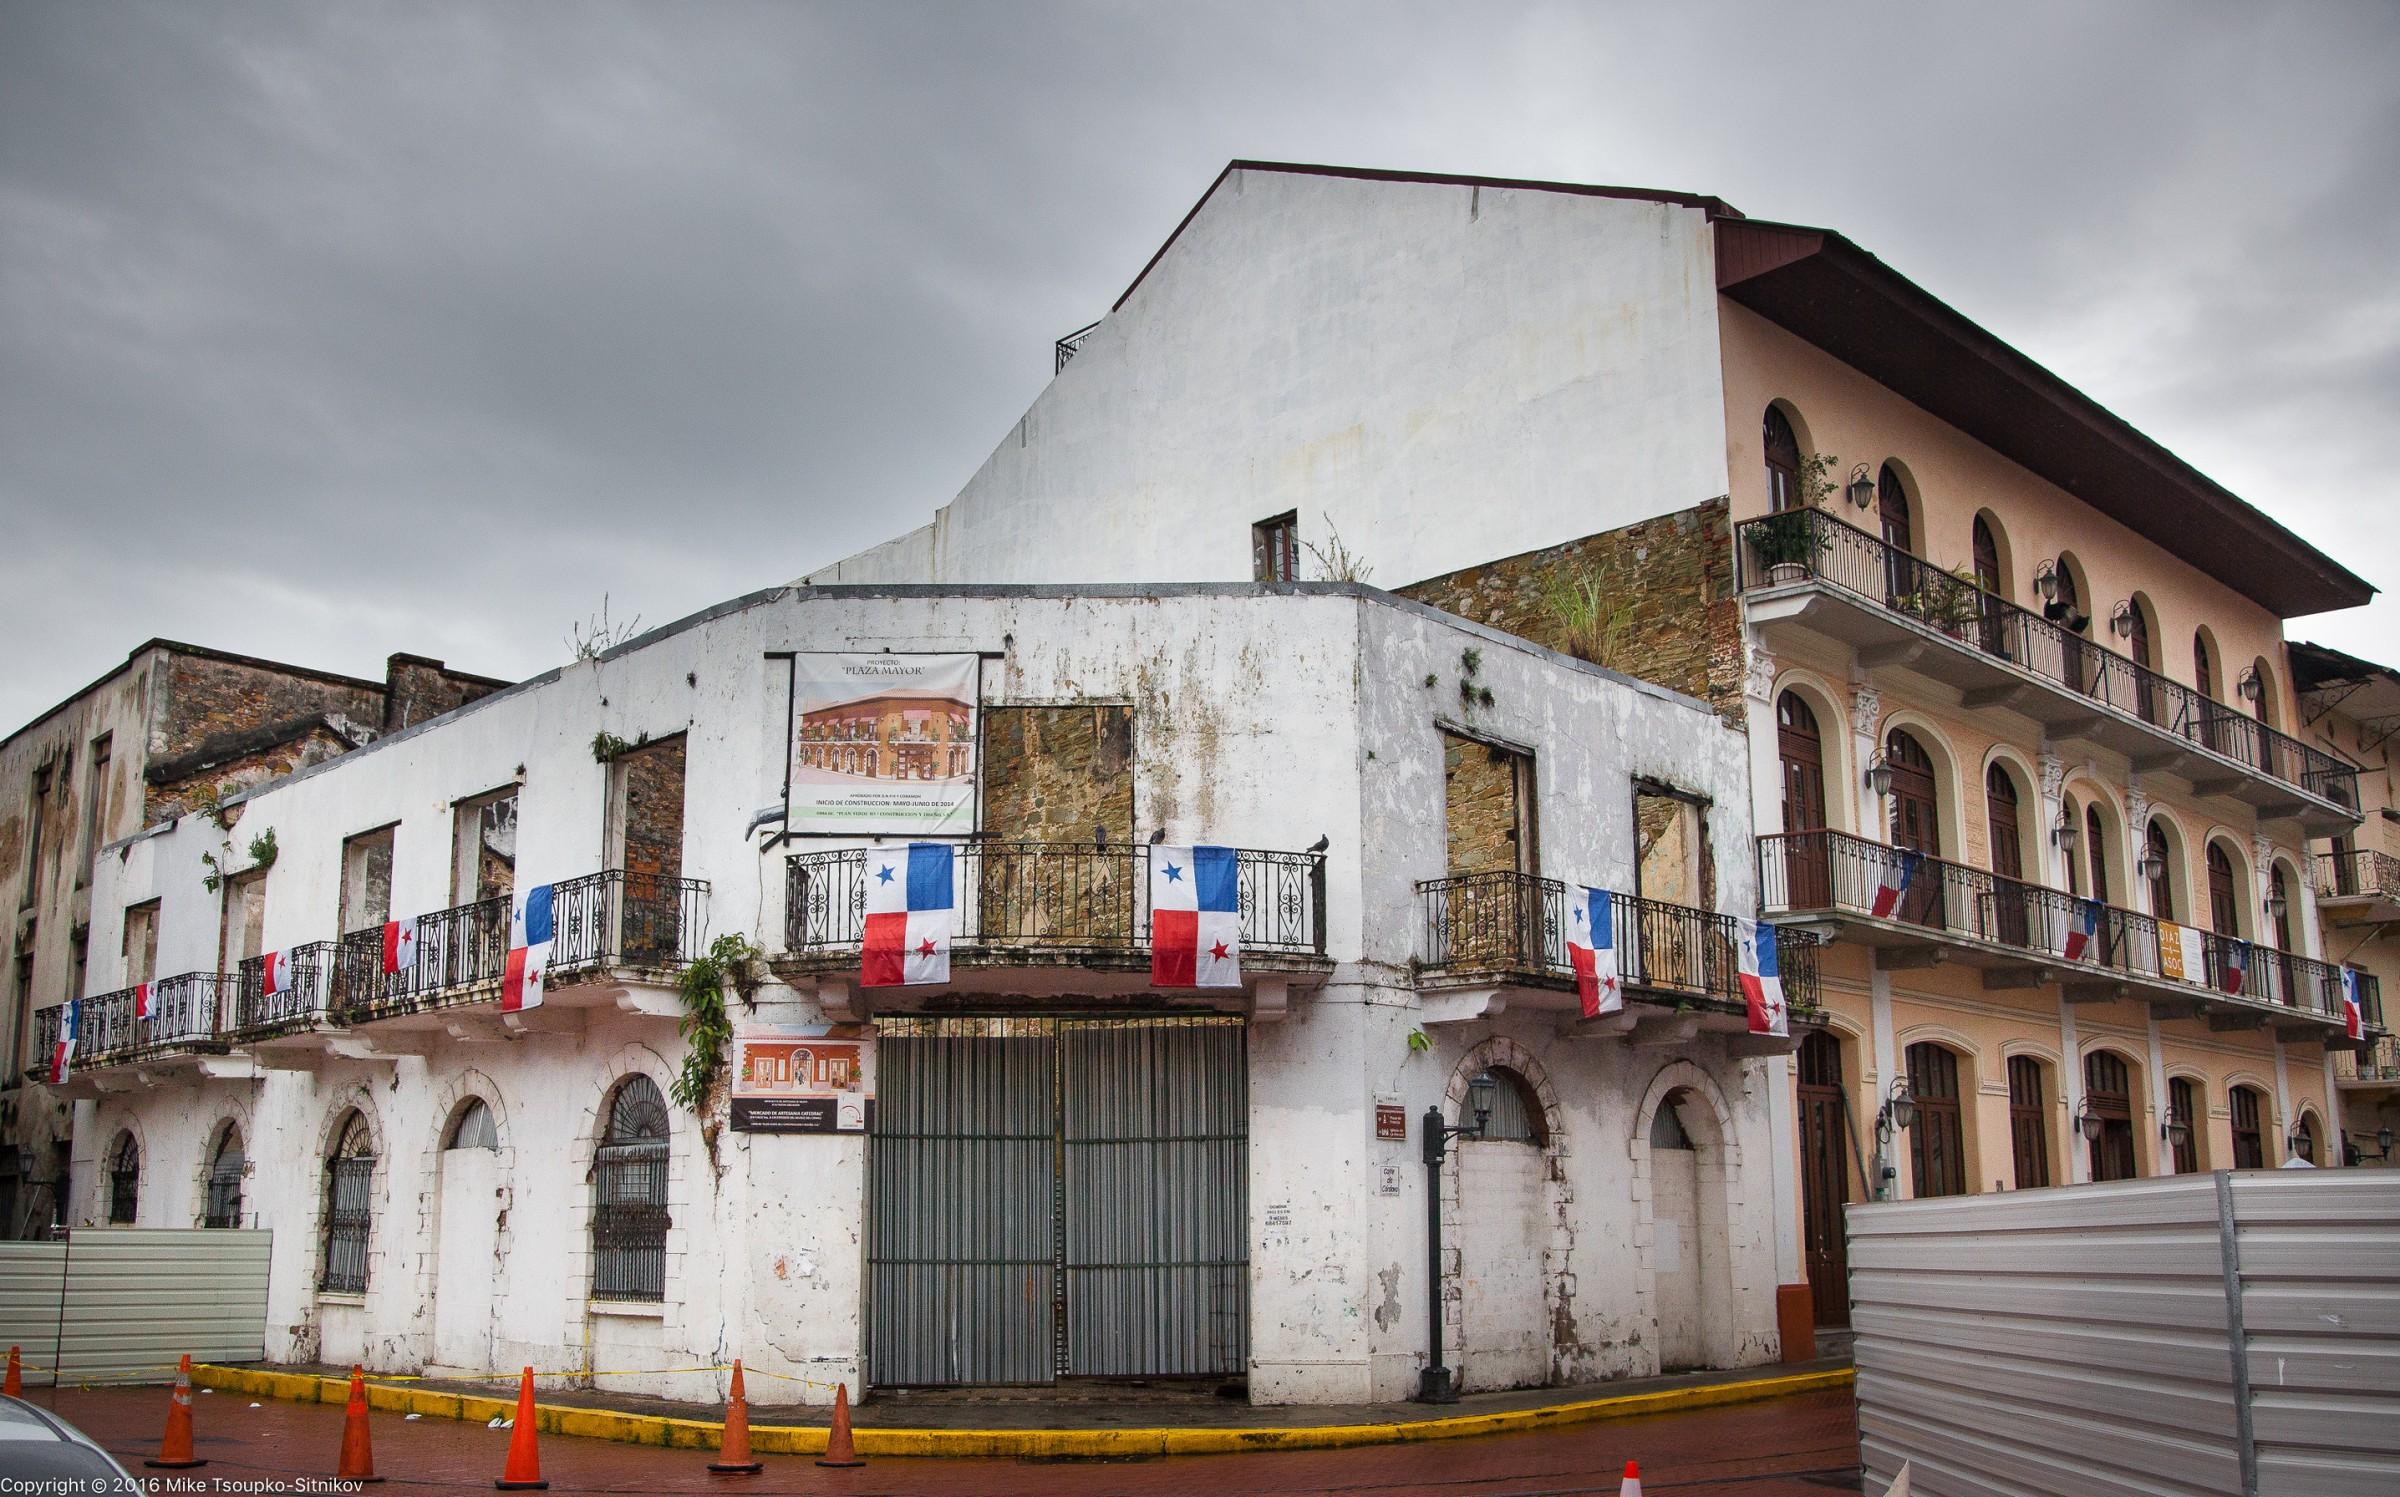 Panama City. A part of the Old Town under restoration